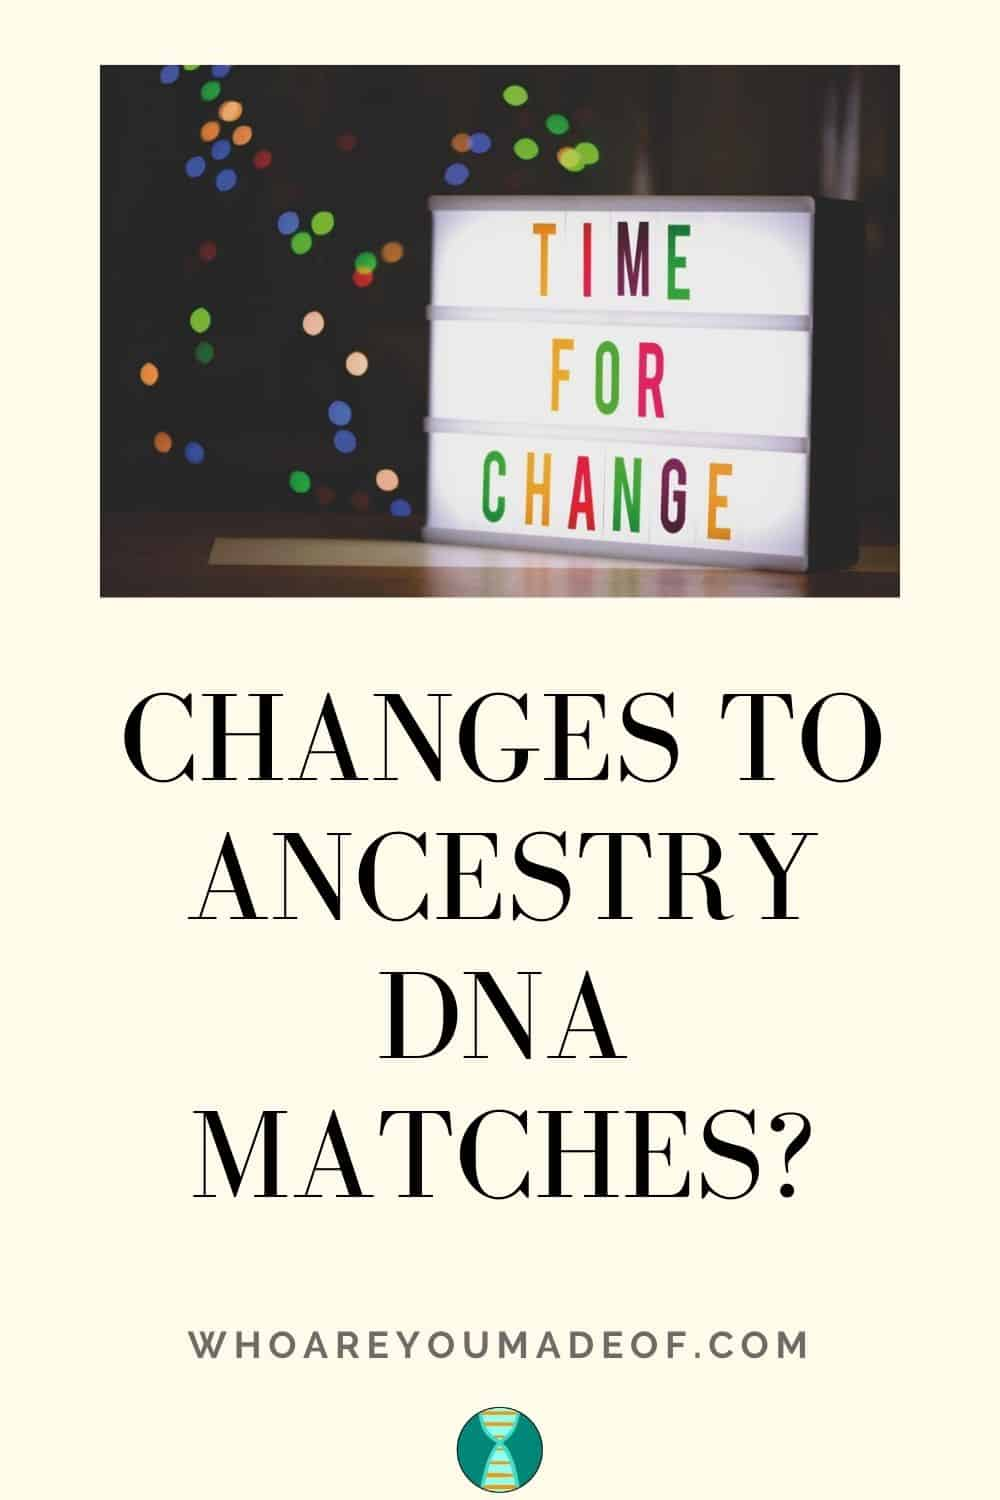 Changes to Ancestry DNA Matches Pinterest Optimized Image